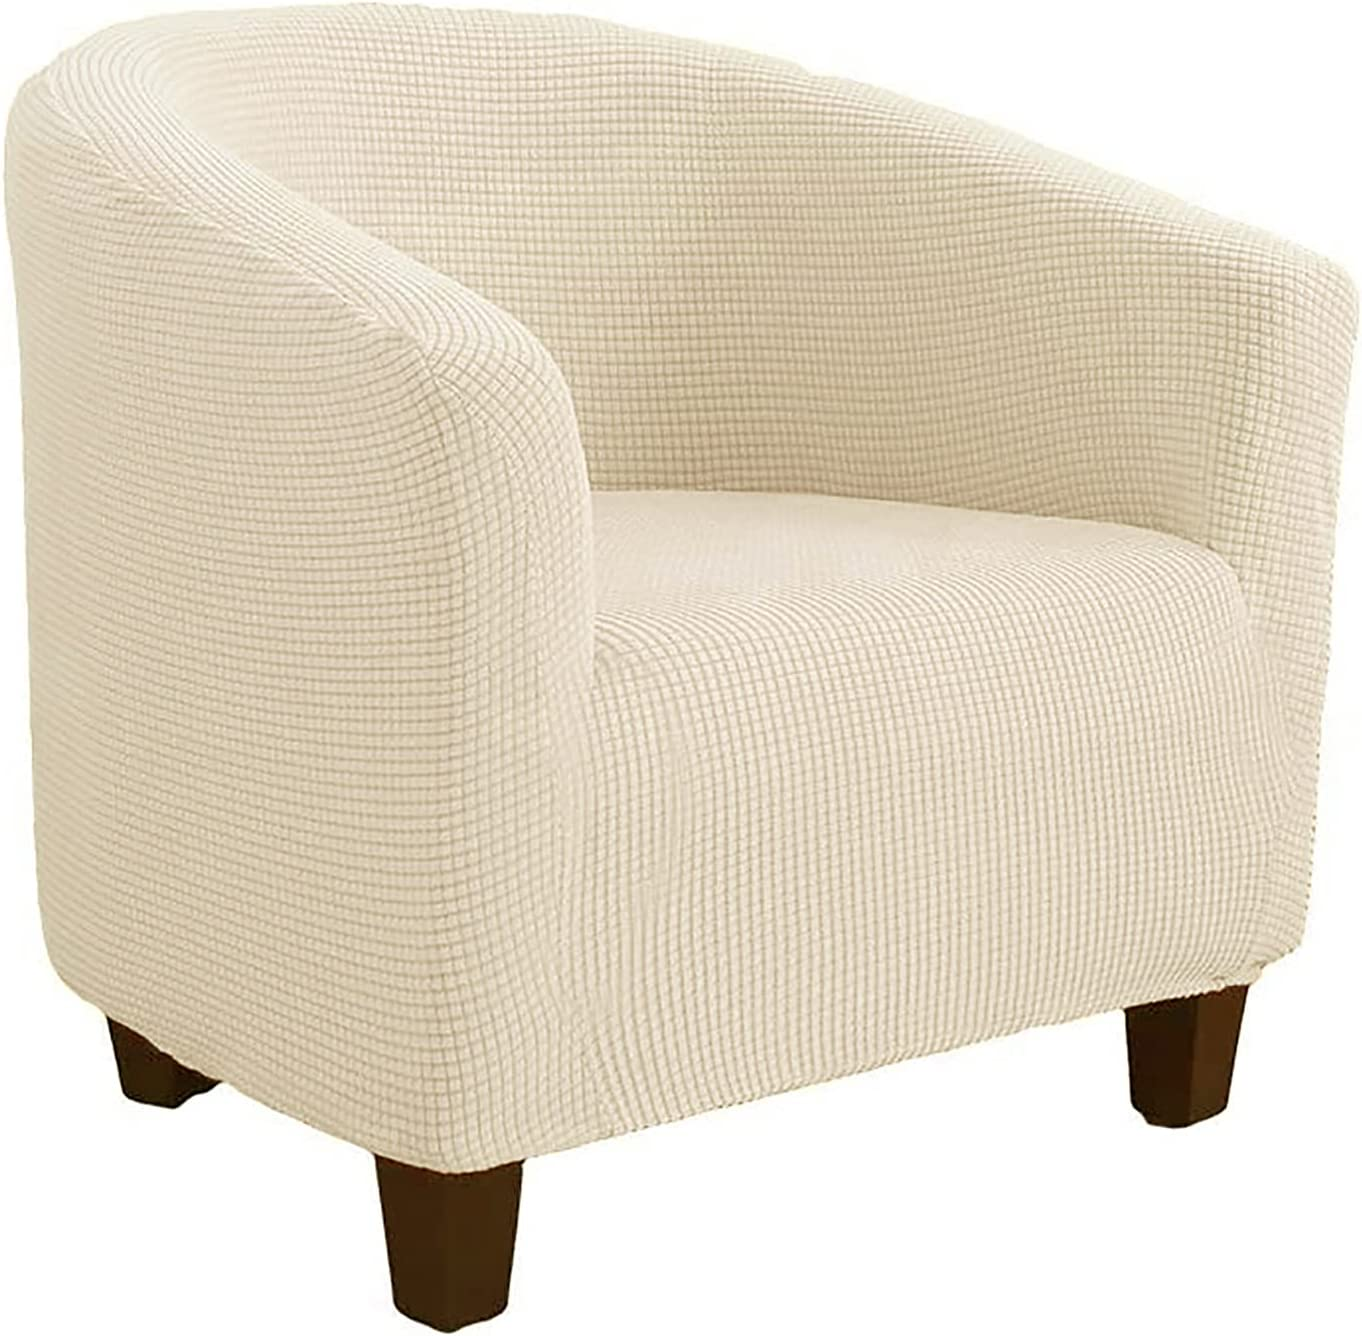 Y J Club Chair Now free shipping Slipcover Cha Slipcovers High Ranking TOP16 for Stretch